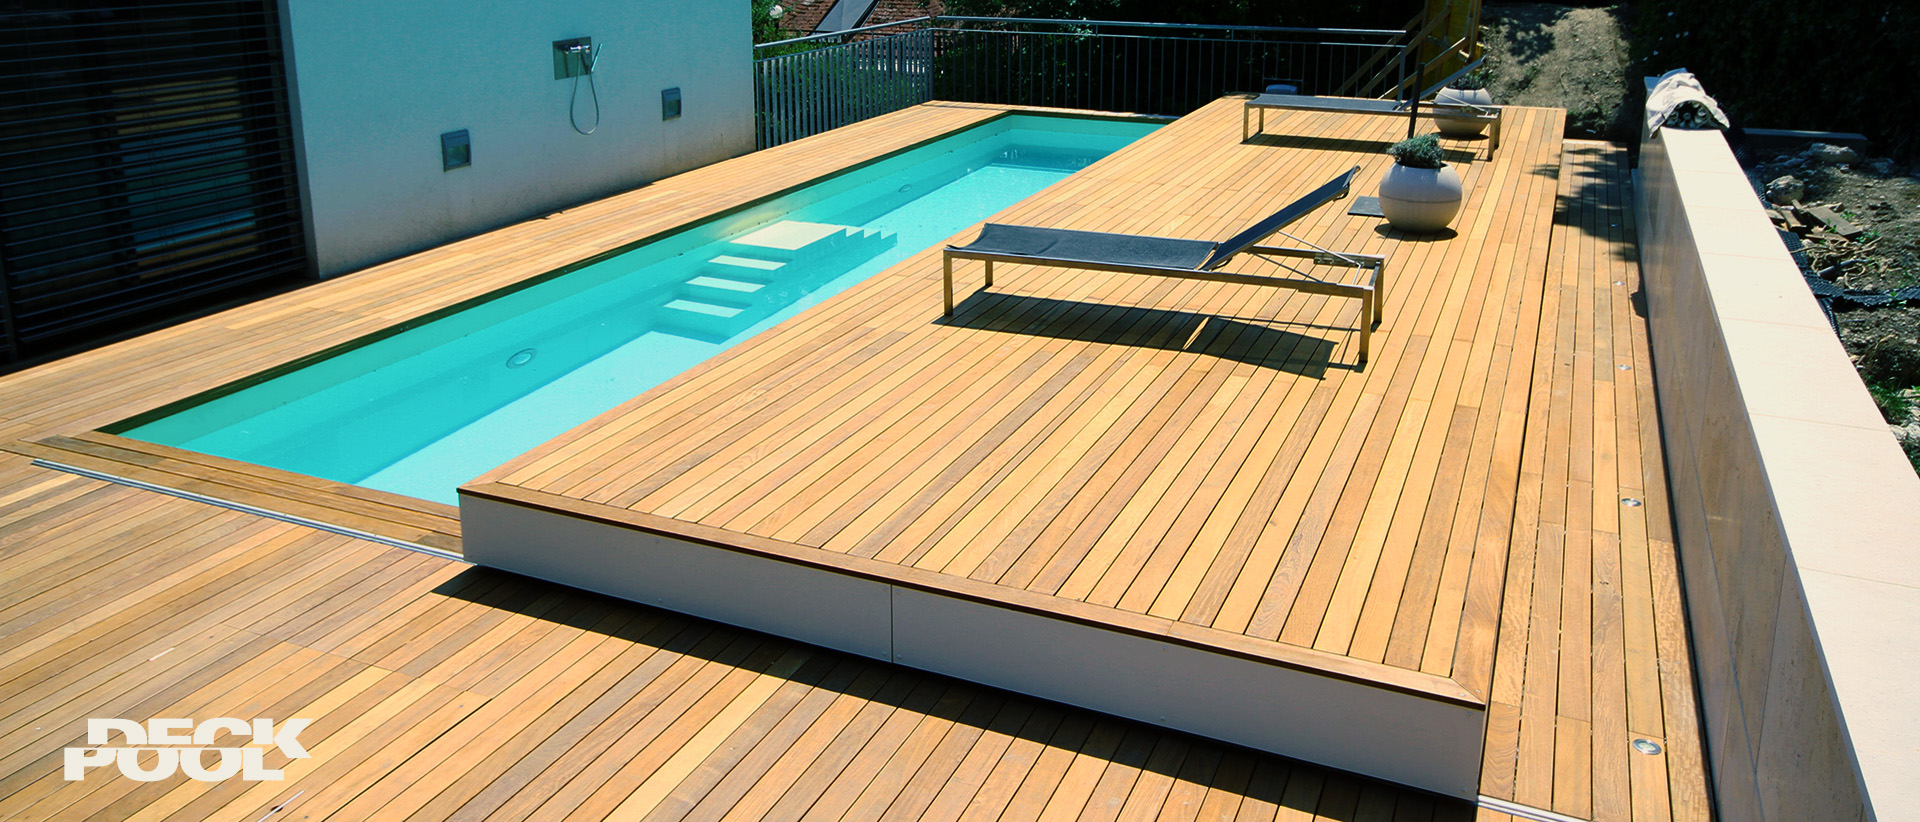 poolabdeckung begehbar pool deck. Black Bedroom Furniture Sets. Home Design Ideas